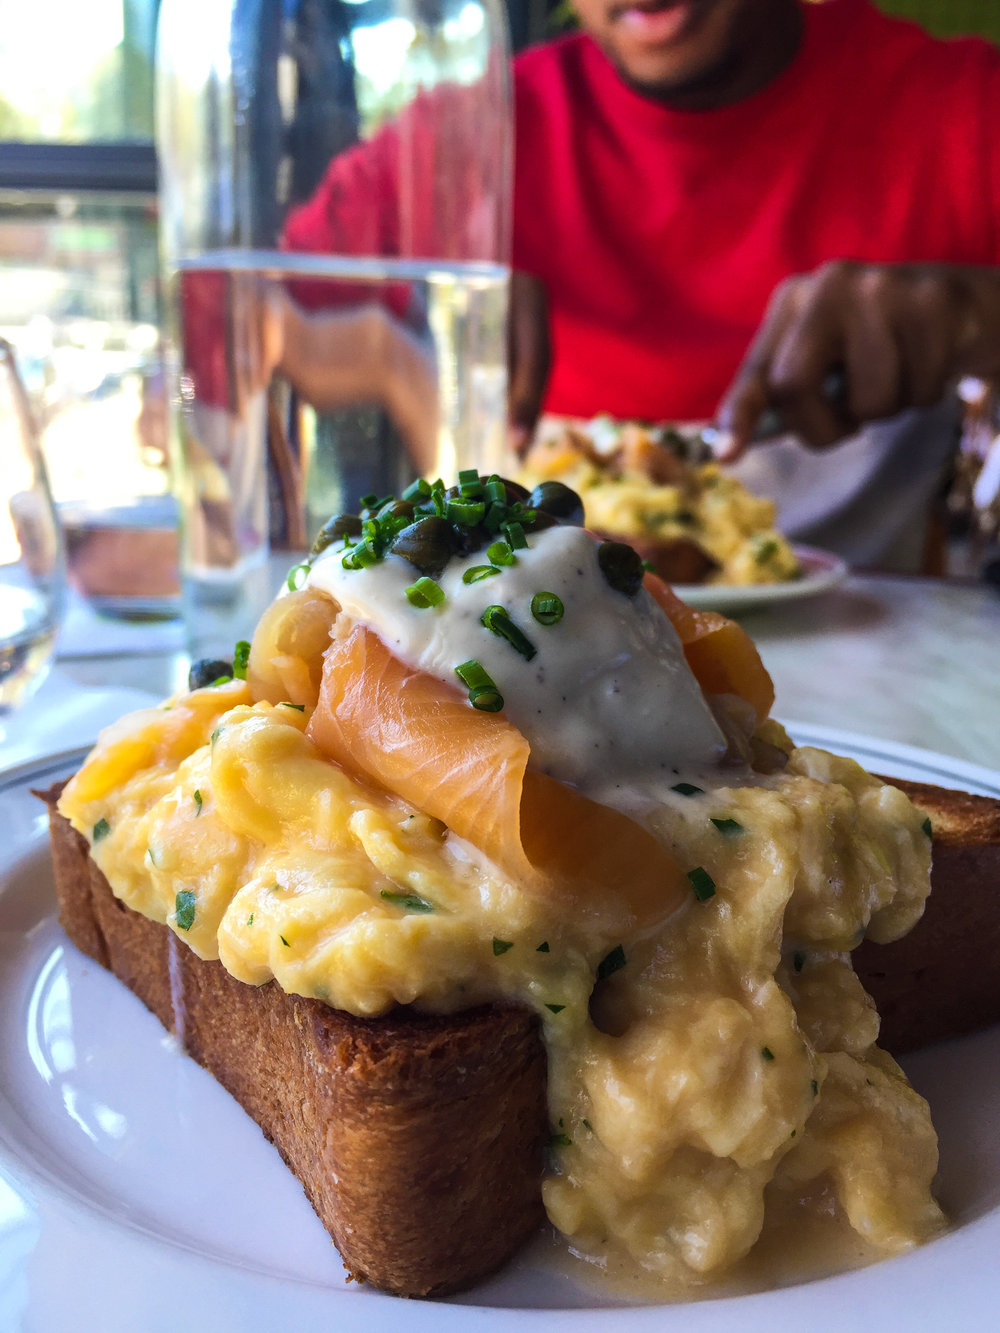 Soft Scrambled Eggs & Cold Smoked Trout from Bread & Butterfly - Crème Fraîche, Brioche.$14.00